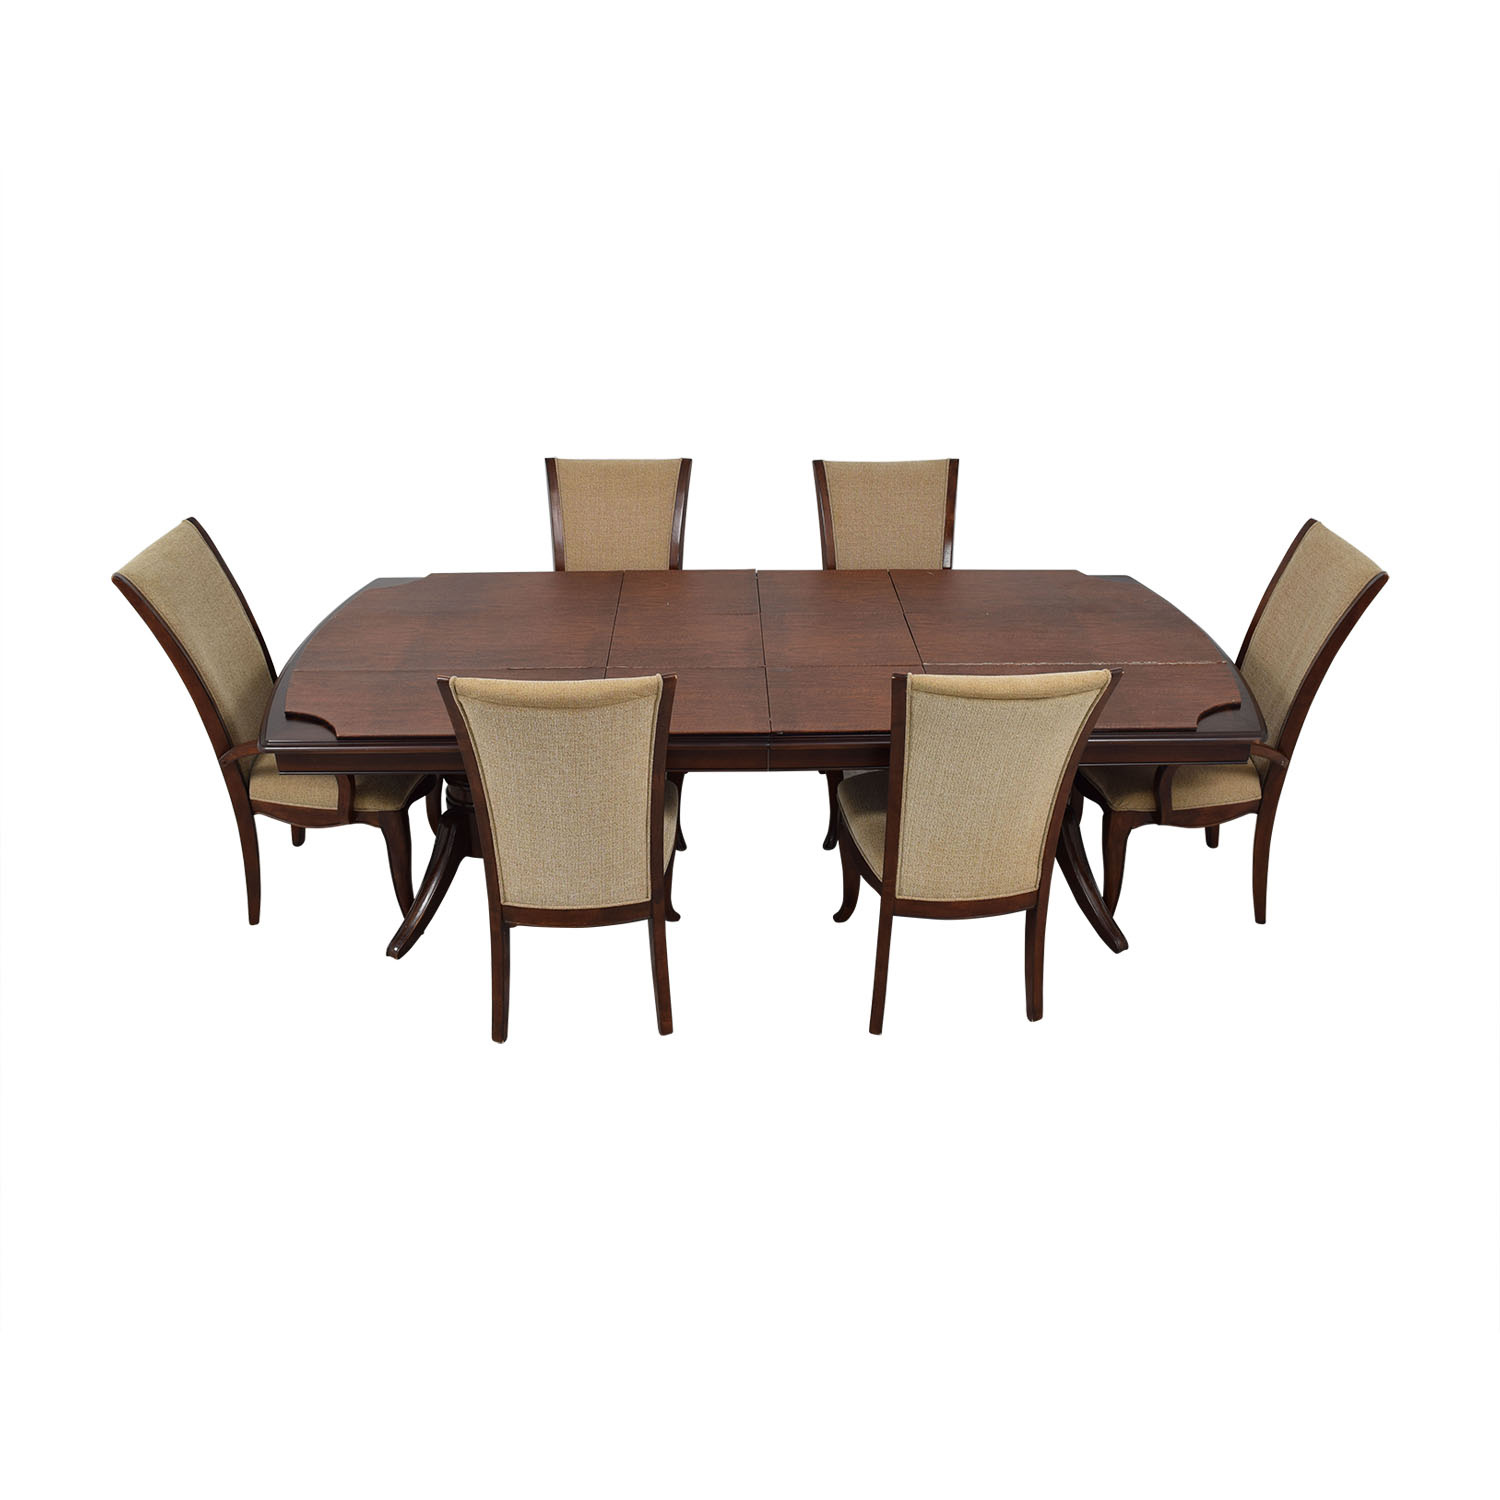 buy Raymour & Flanigan Raymour & Flanigan Extendable Dining Set with Padded Protector online